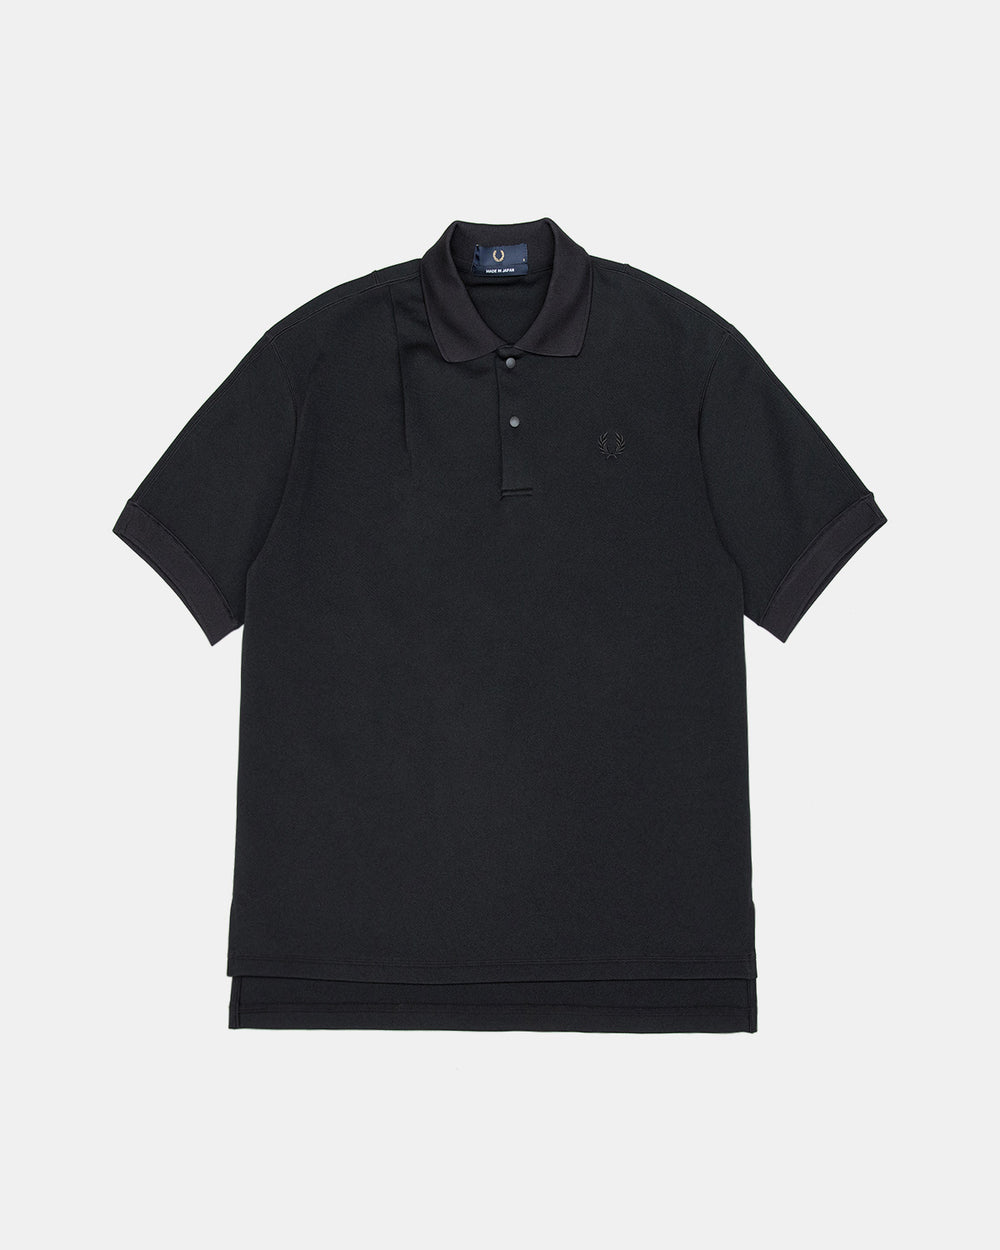 Fred Perry - Laurel Wreath Made in Japan Tuck Detail Polo Shirt (Black)